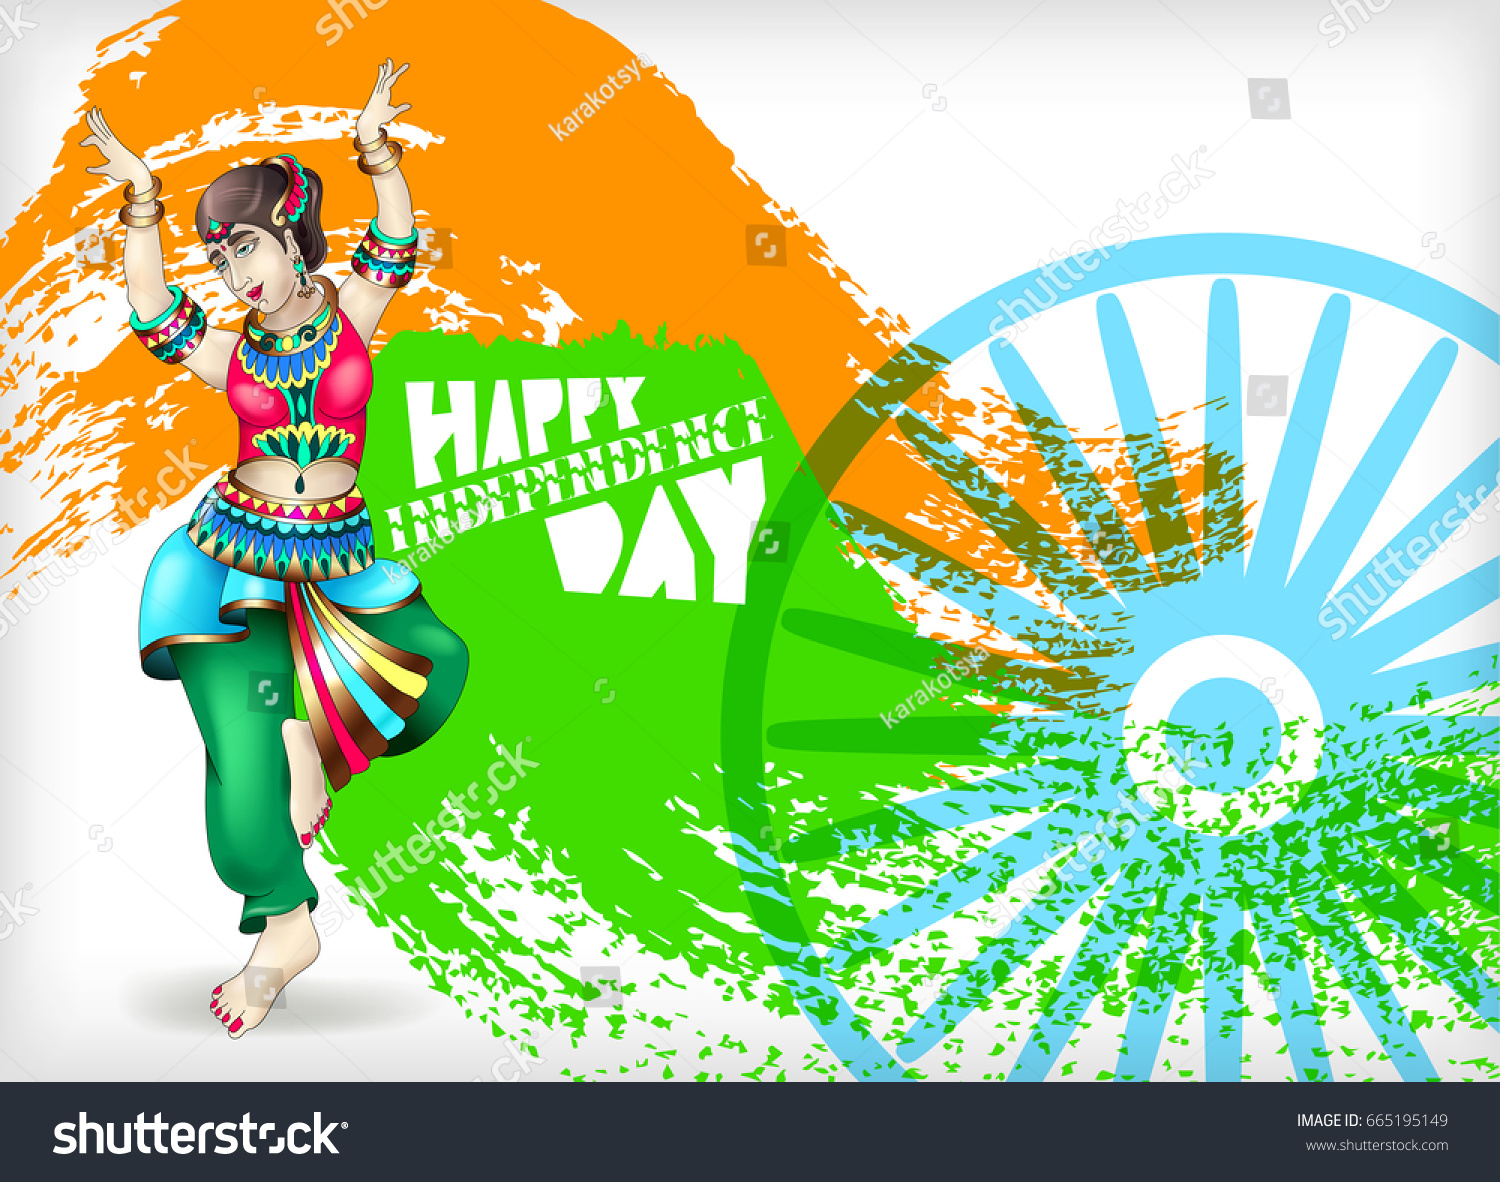 Happy Independence Day India Greeting Card Stock Illustration